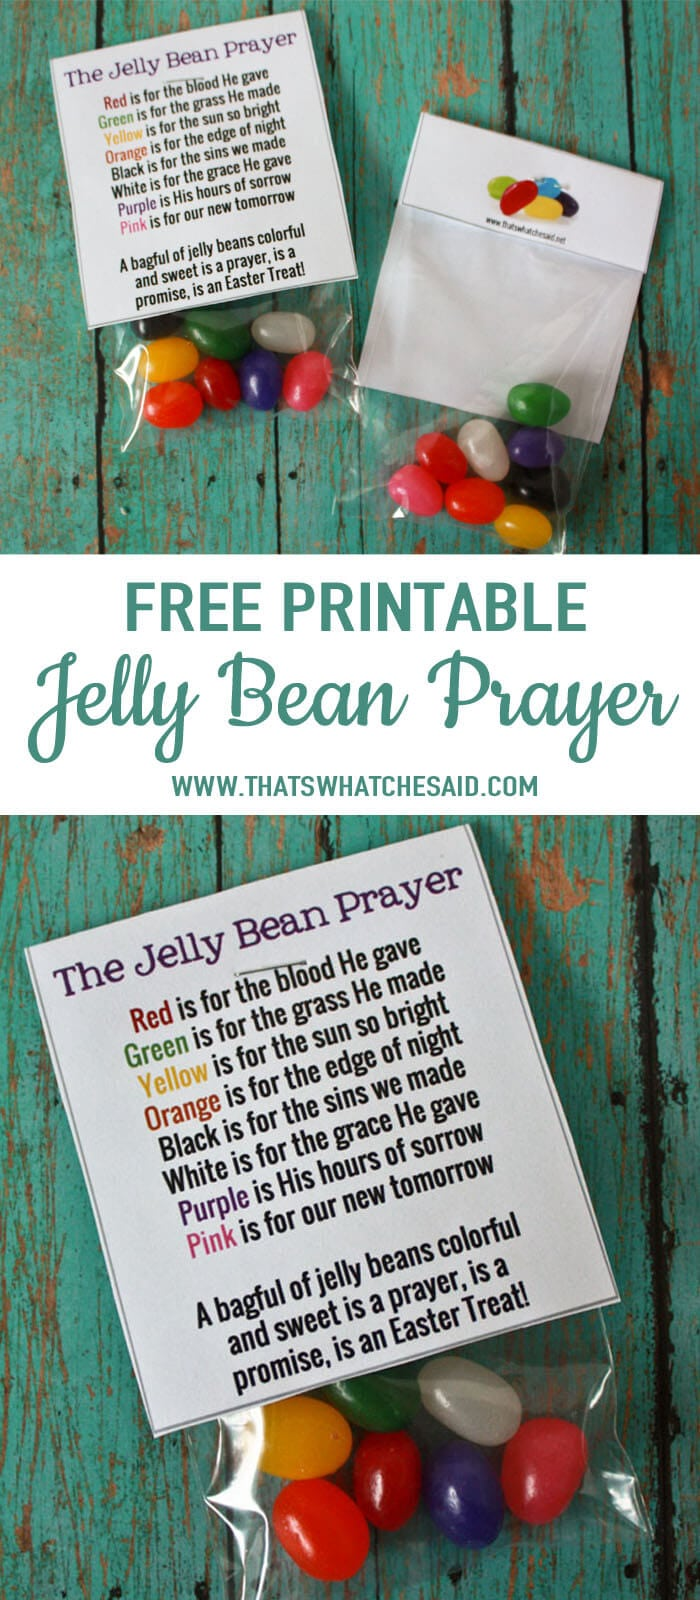 photo relating to Jelly Bean Prayer Printable identify Jelly Bean Prayer Free of charge Printable - Thats What Che Reported